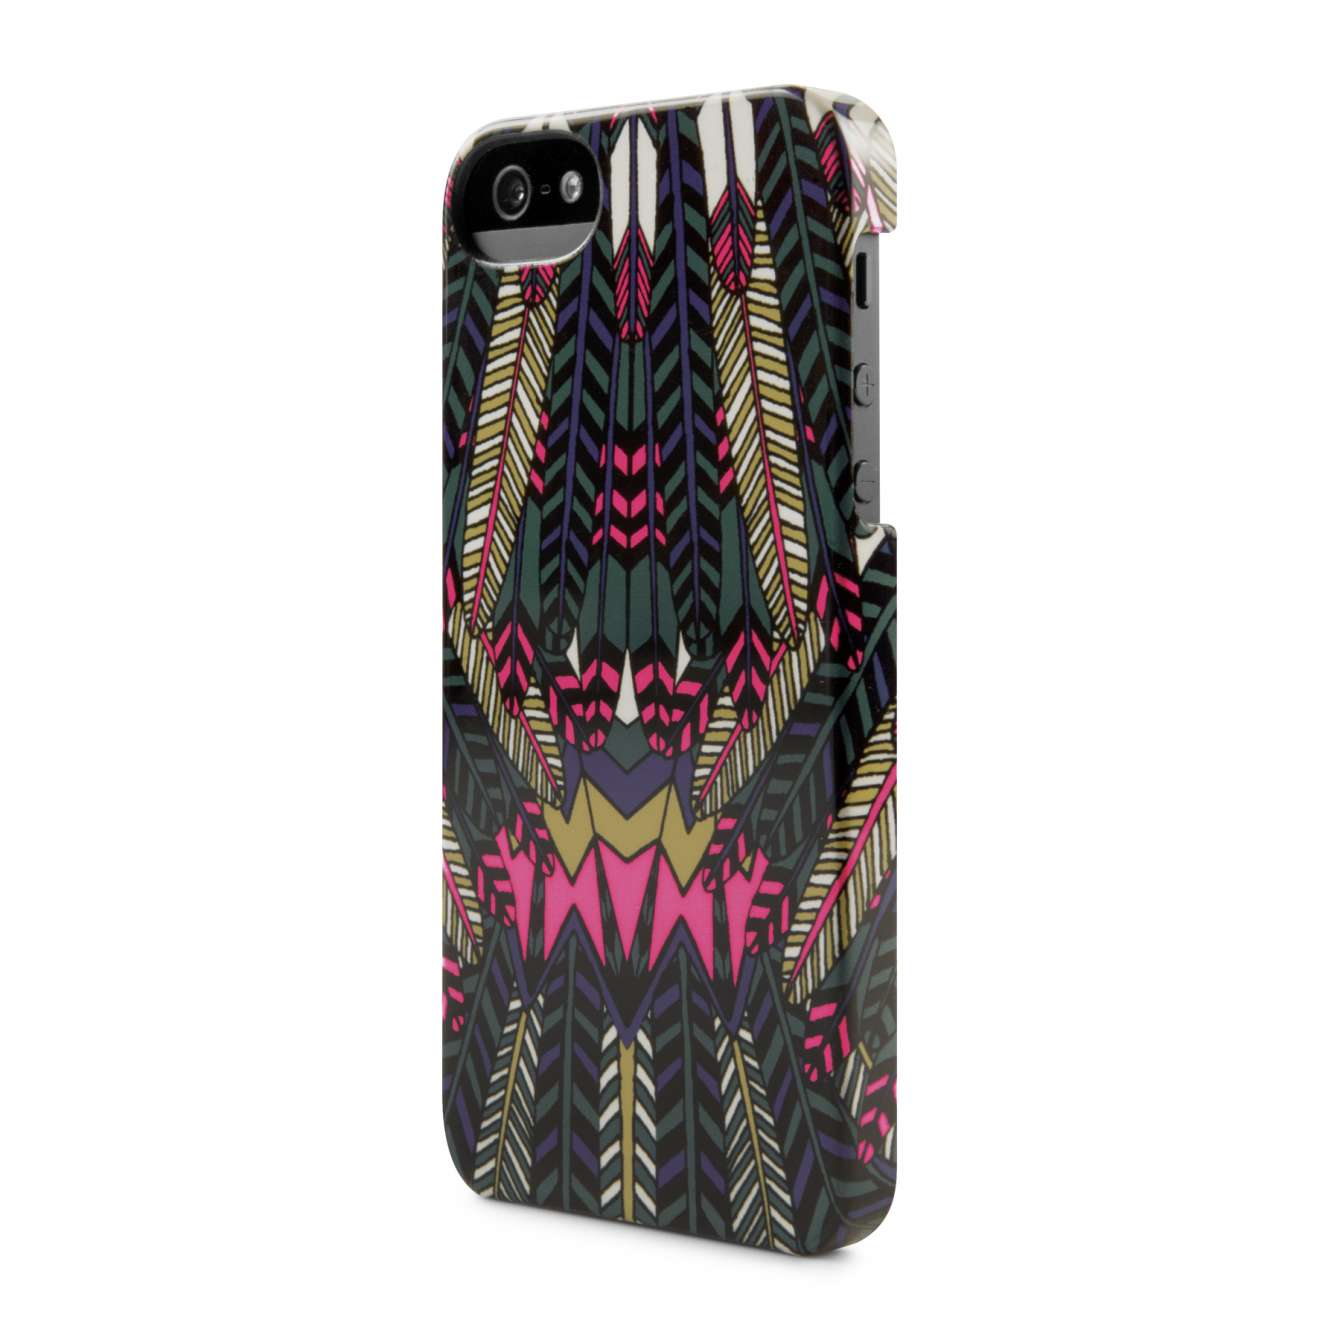 Mara Hoffman x Incase iPhone 5 Snap Cases-5